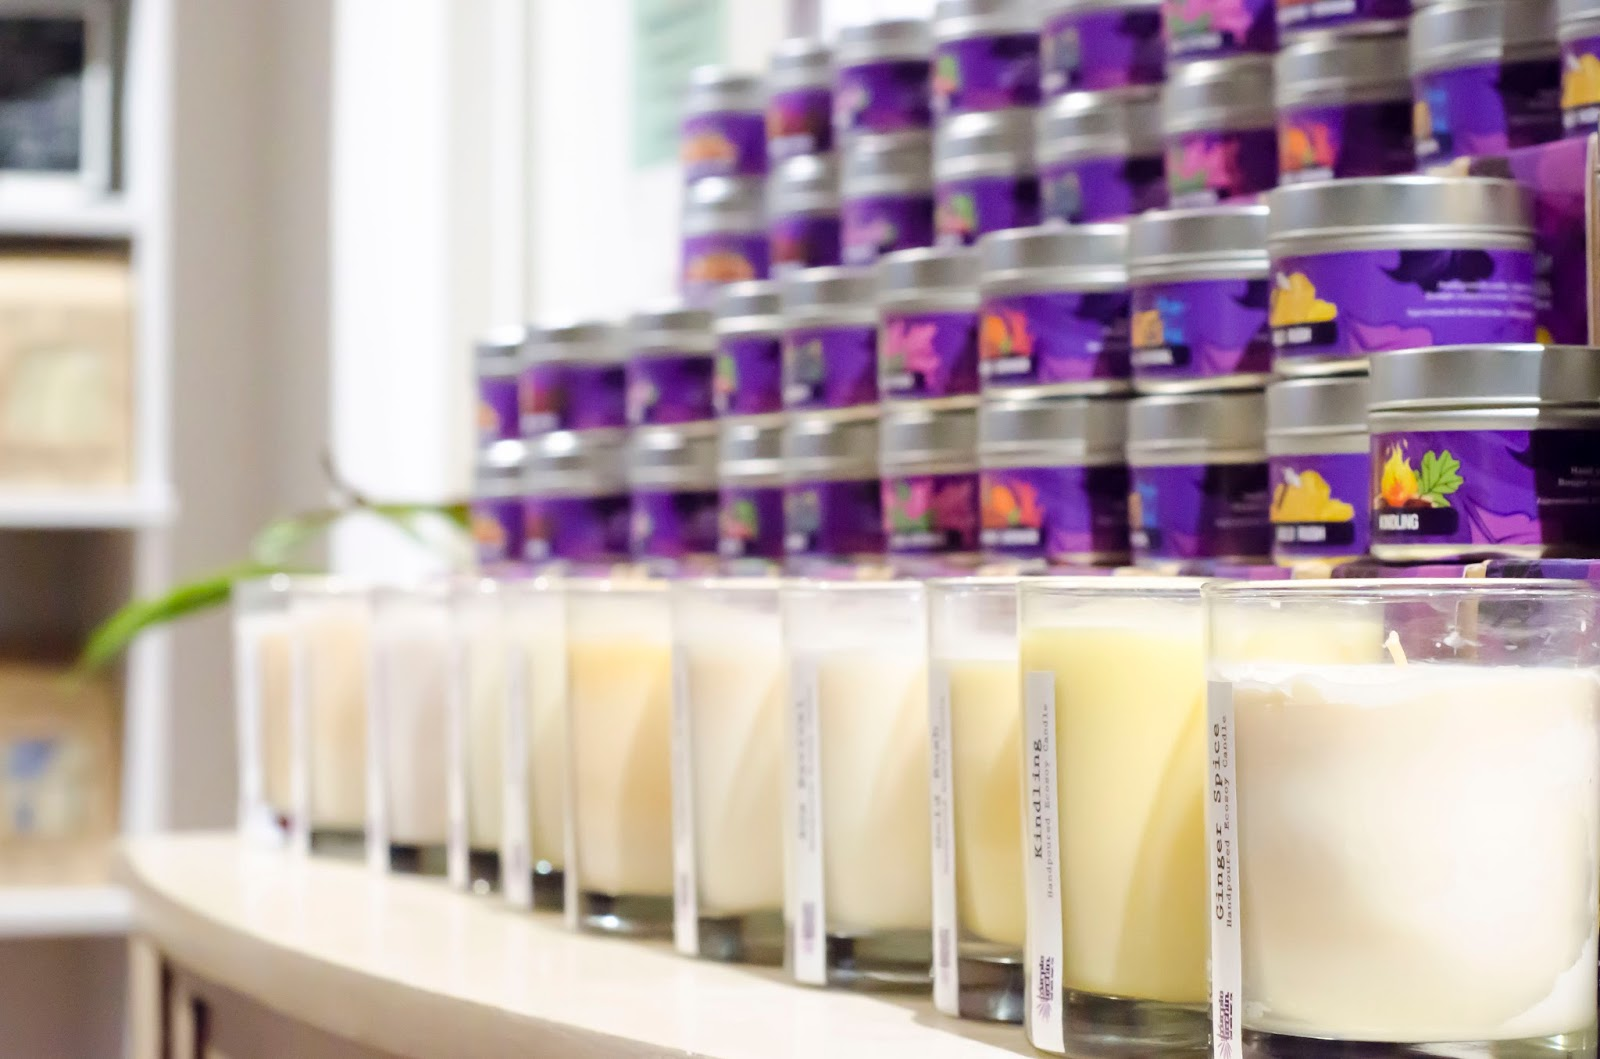 Purple Urchin Eco Wax Soy Candles on display in store with shallow depth of field